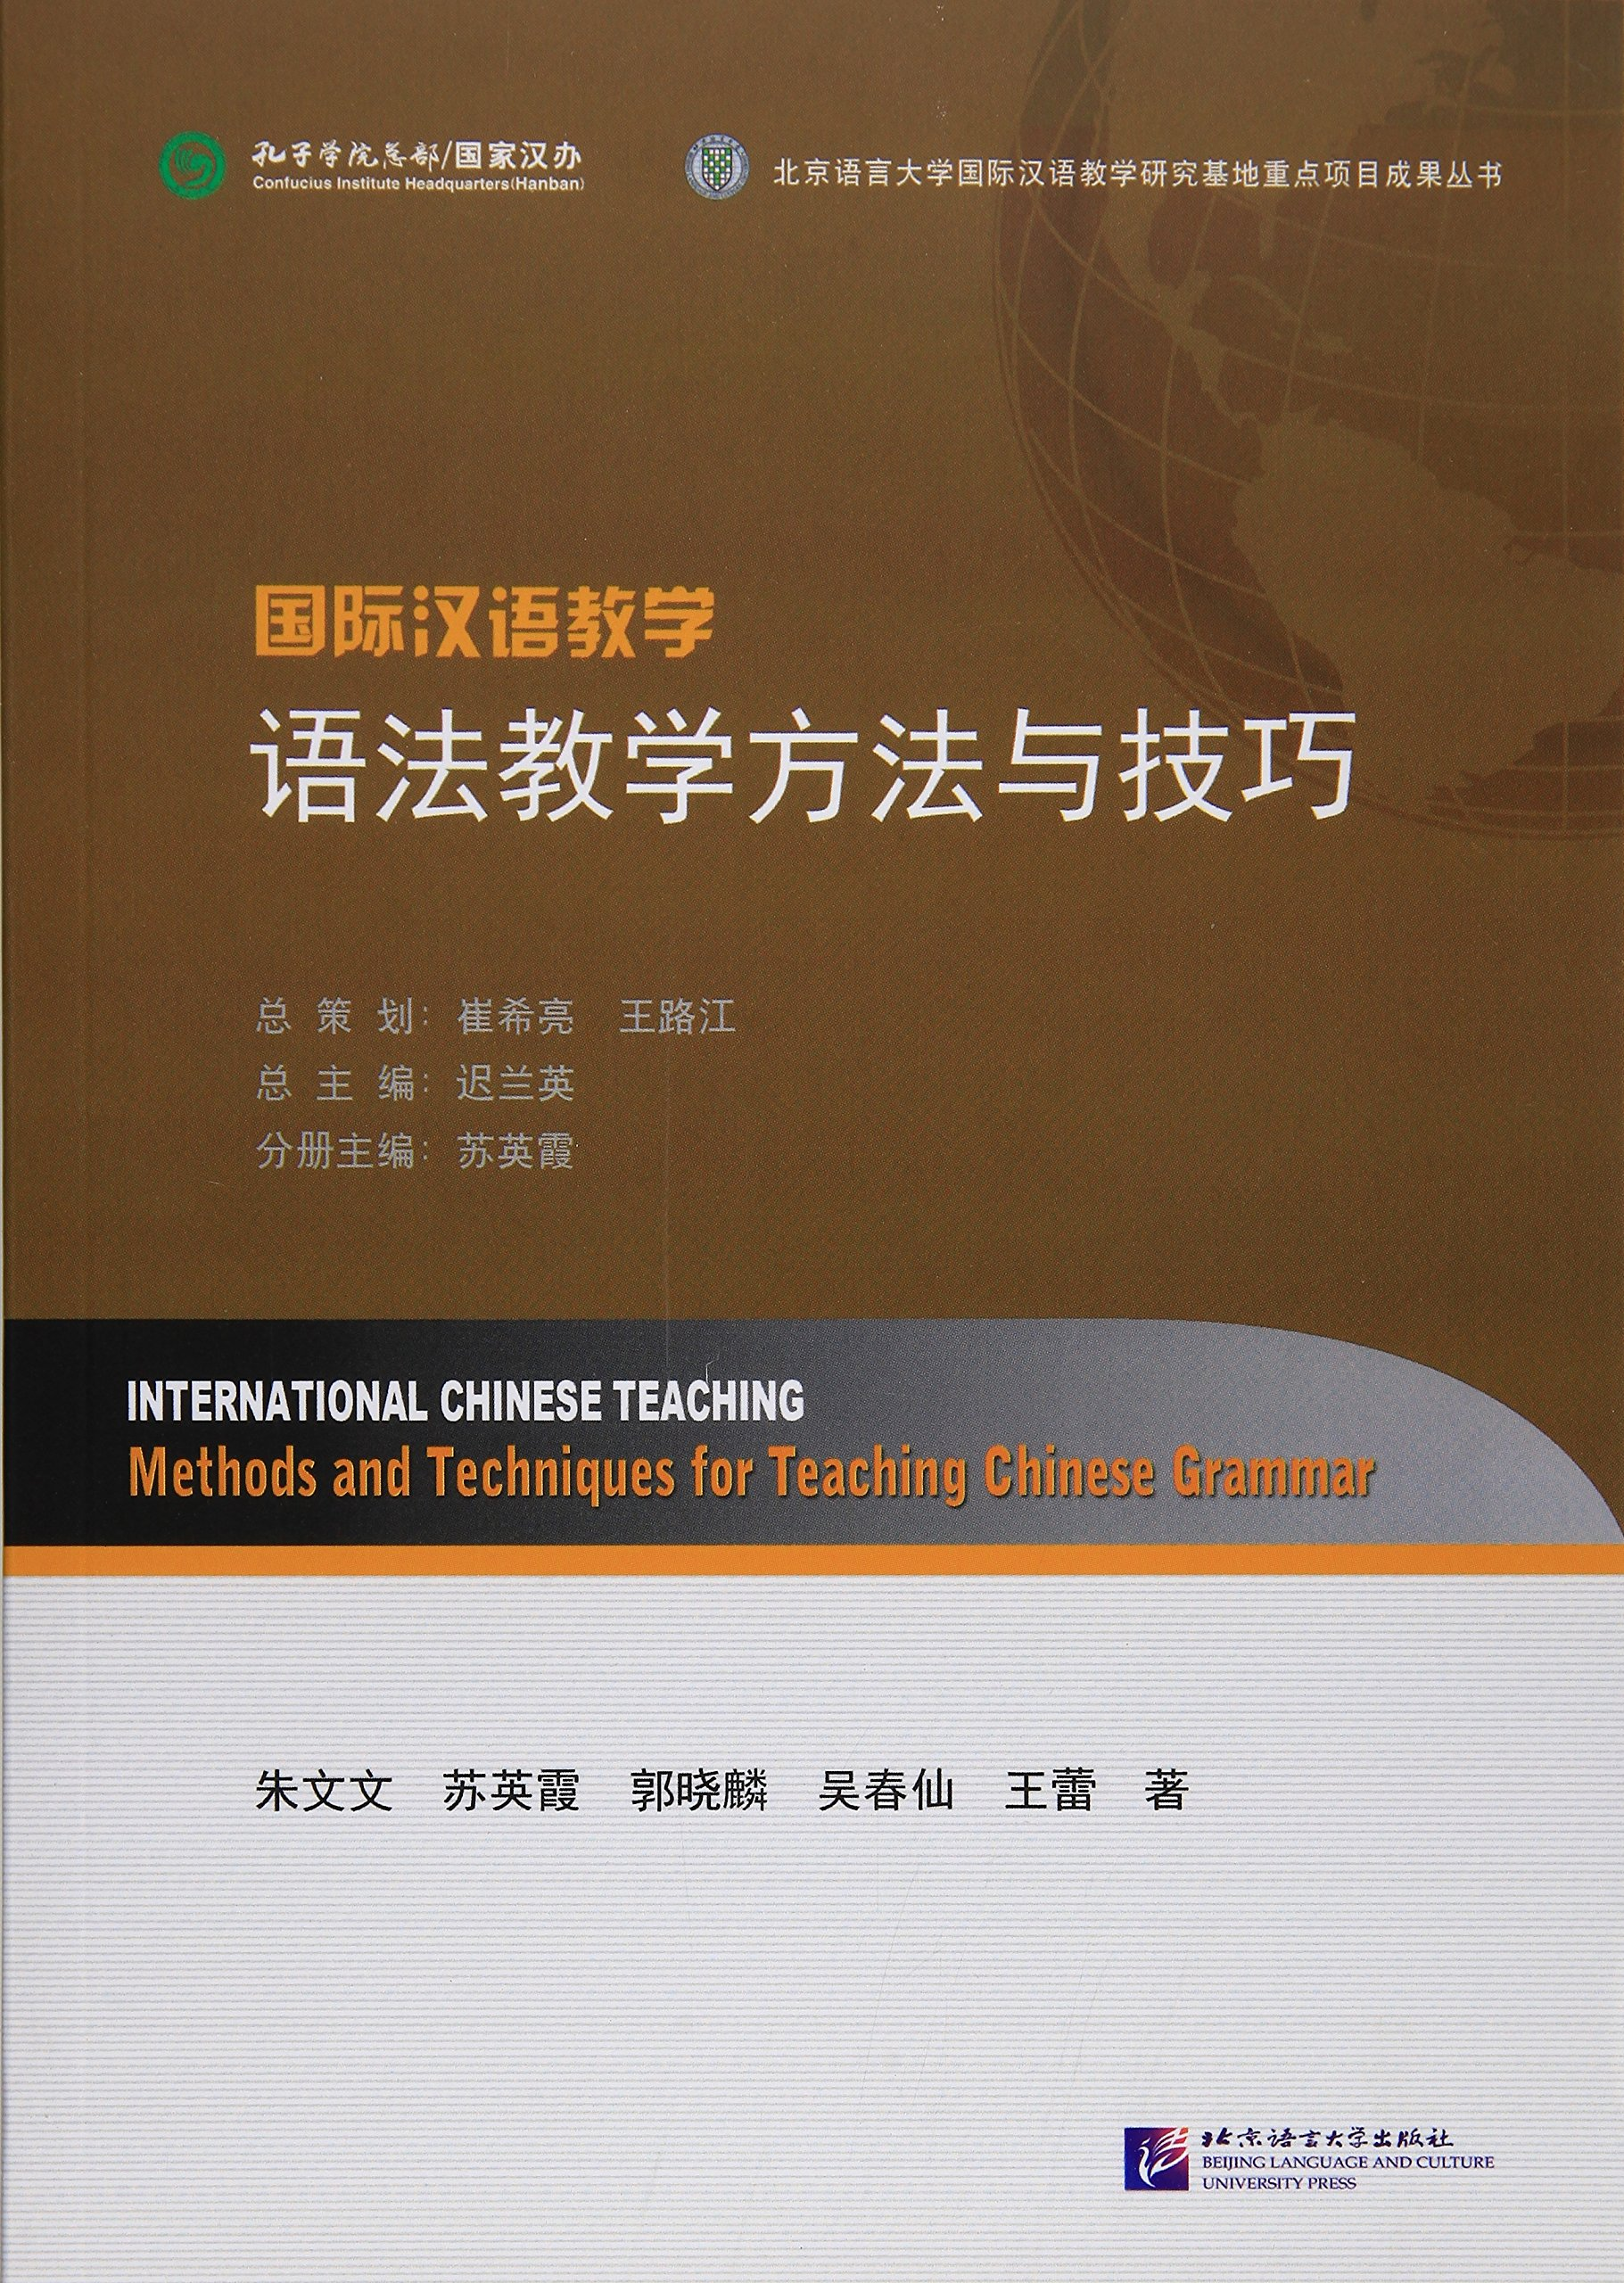 International Chinese Teaching: Methods and Techniques for Teaching Chinese Grammar